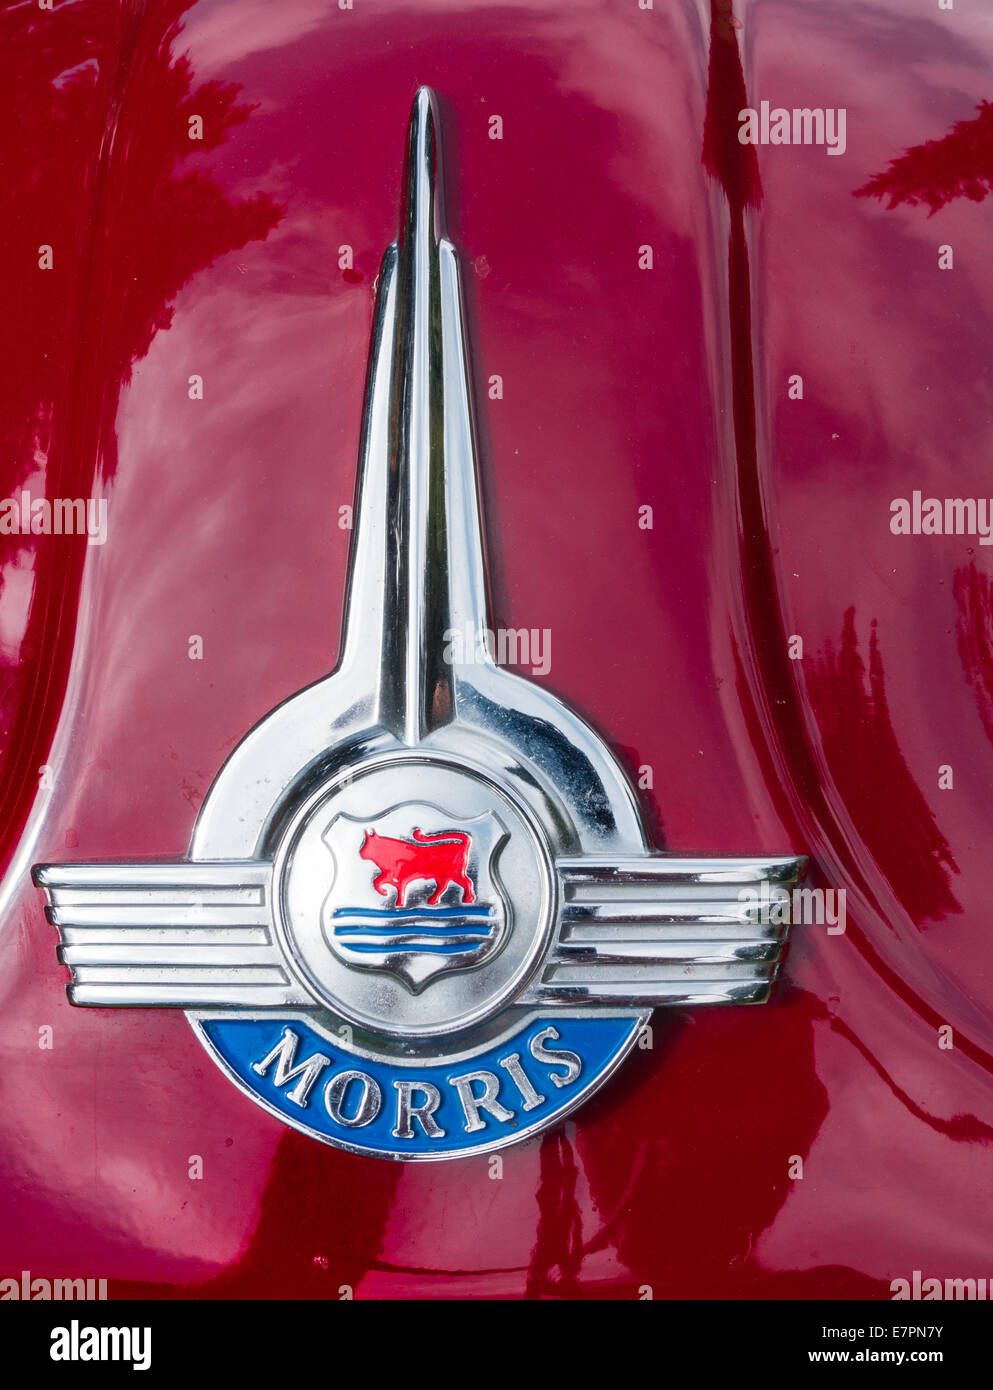 Vehicle Parts & Accessories Vintage Classic Morris Bonnet Badge